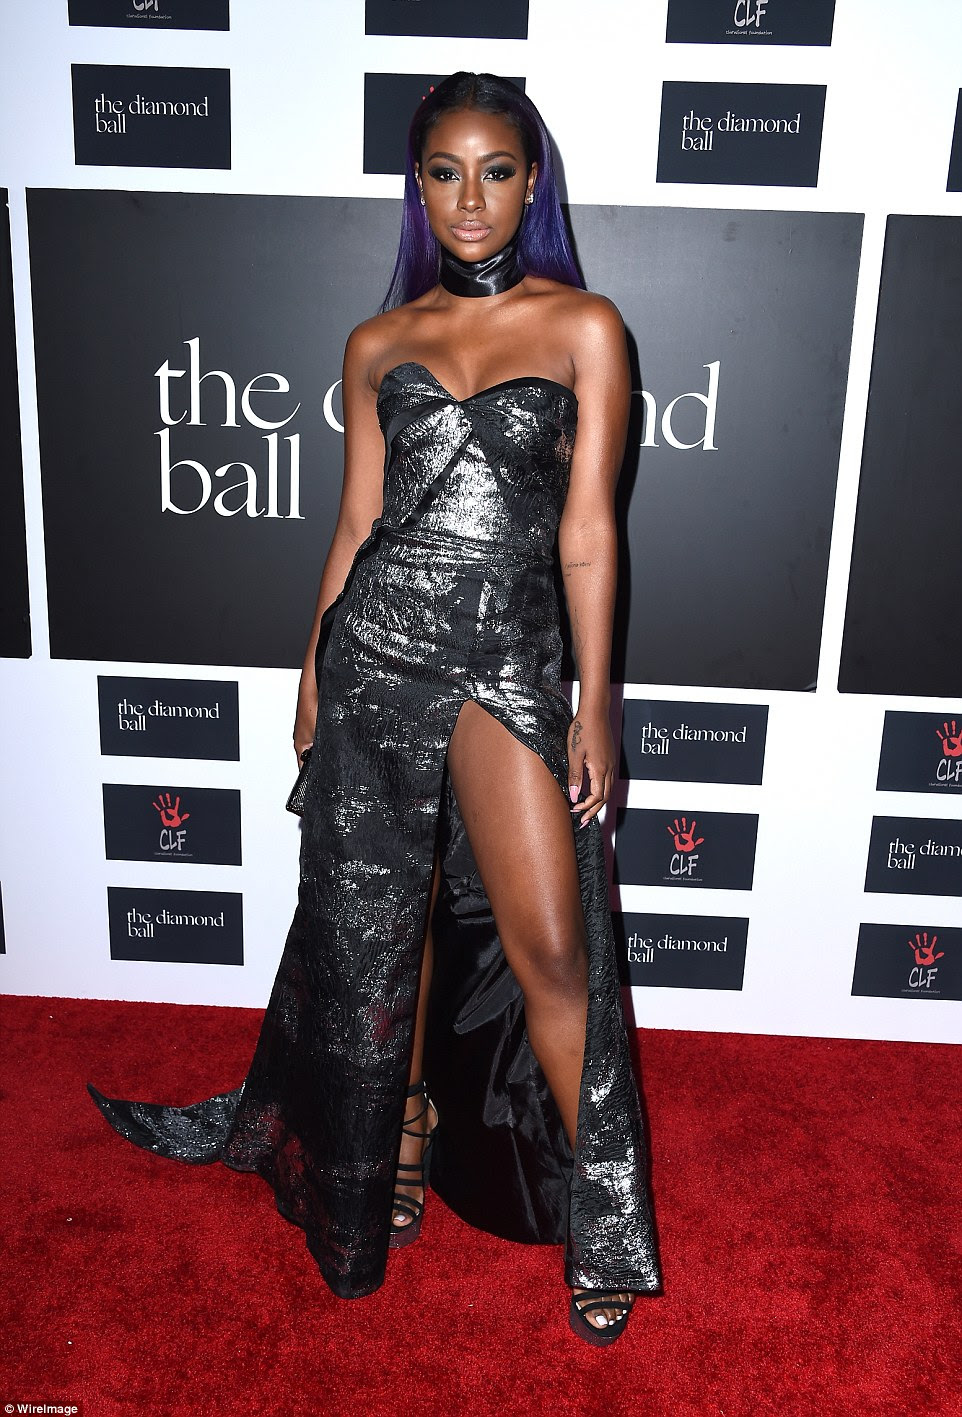 Shine bright: Singer Justine Skye wore a strapless silver dress and thick black choker